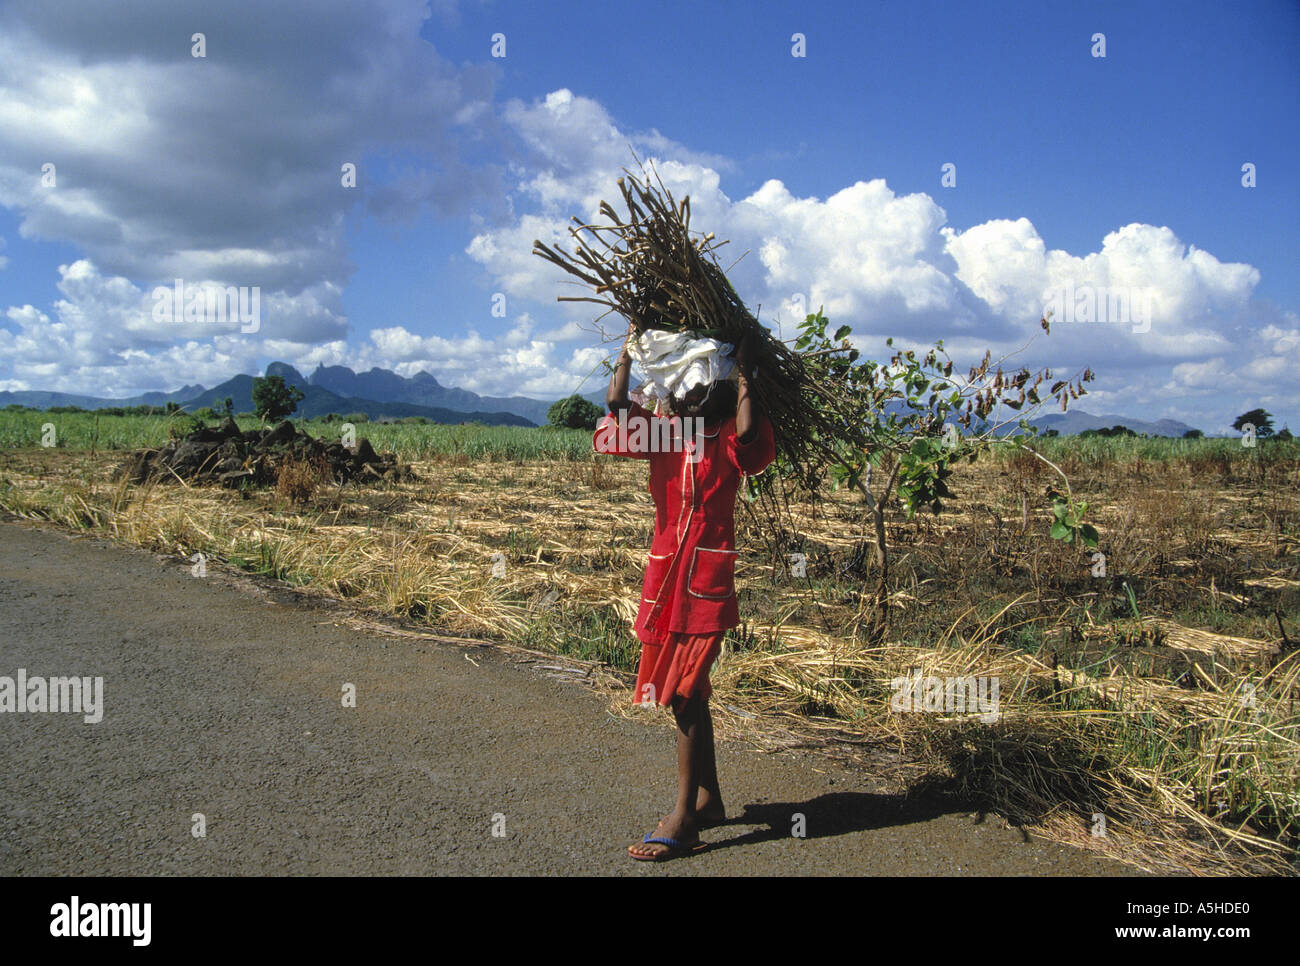 portrait of girl carrying firewood mauritius - Stock Image